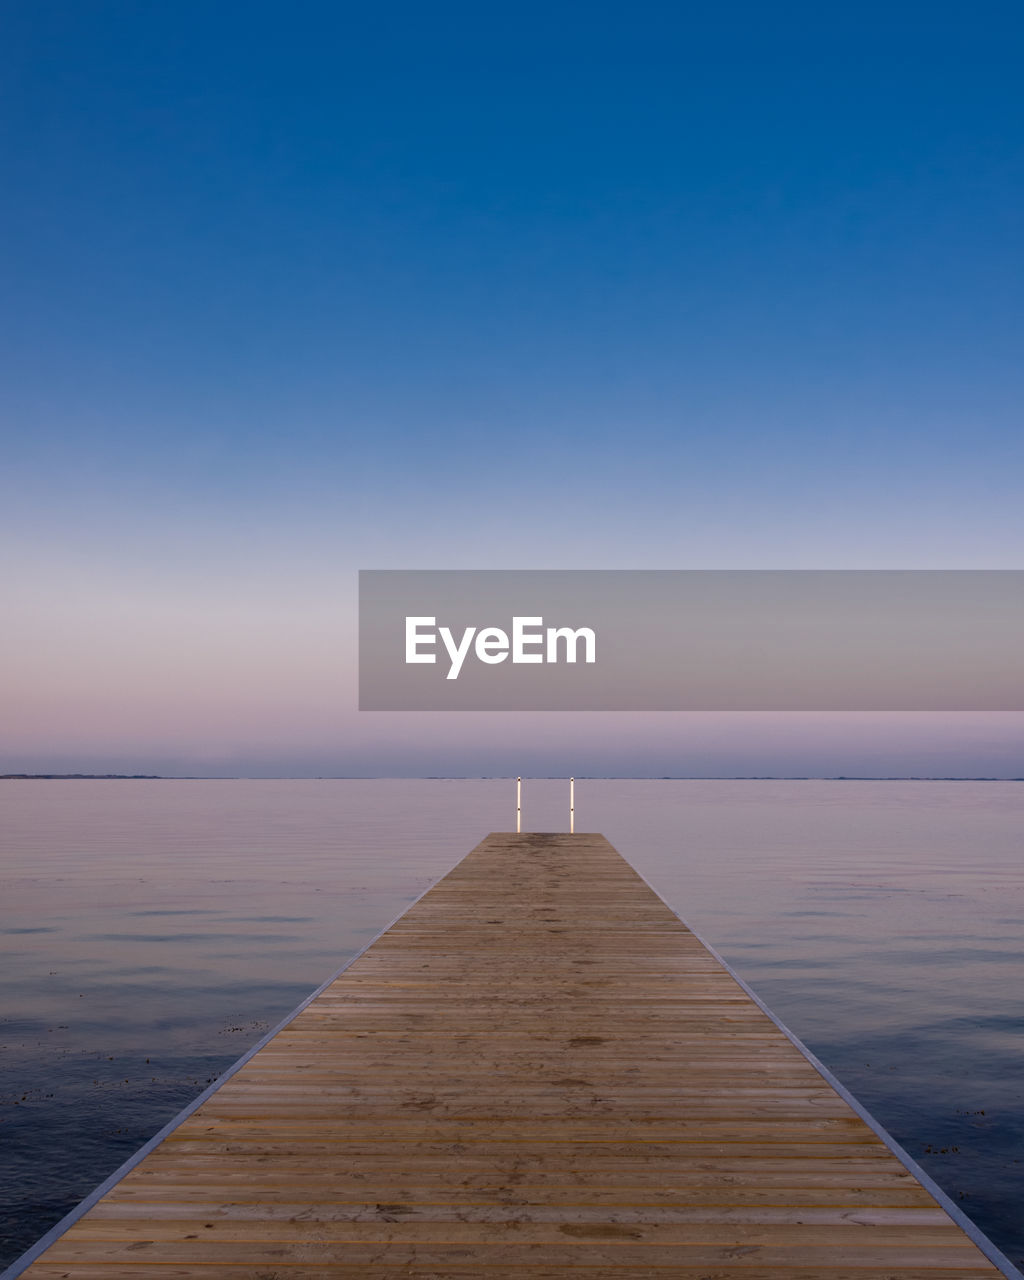 sky, pier, water, wood - material, scenics - nature, jetty, beauty in nature, tranquil scene, sea, tranquility, direction, no people, copy space, horizon over water, nature, clear sky, the way forward, sunset, blue, diminishing perspective, outdoors, wood paneling, long